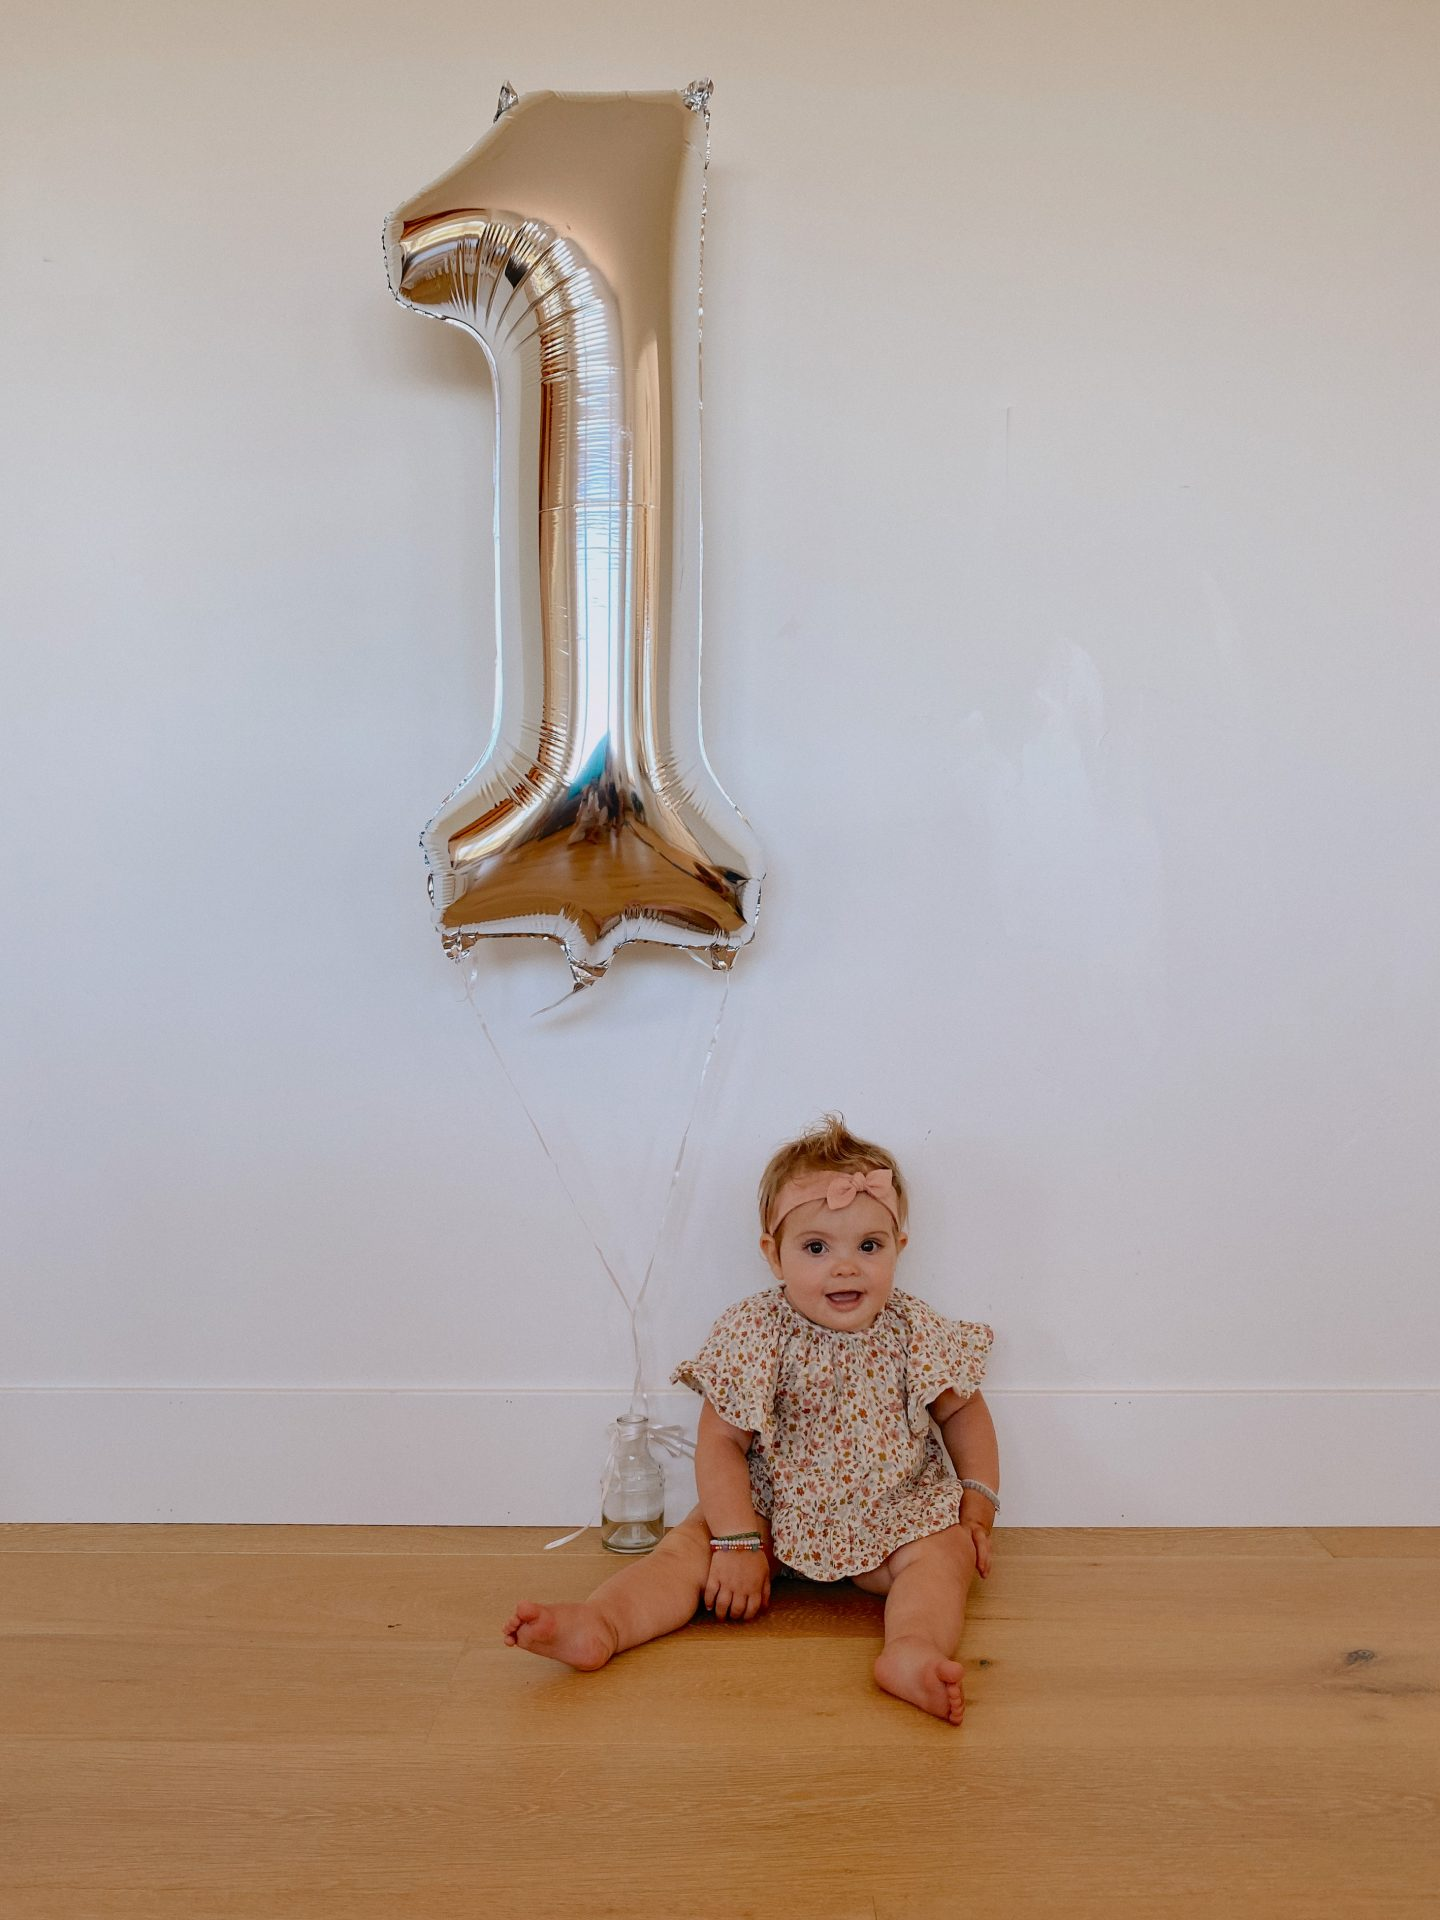 Daisy Theme Party by popular San Diego lifestyle blog, Navy Grace: image of a baby sitting next to a silver helium filled number 1 balloon.